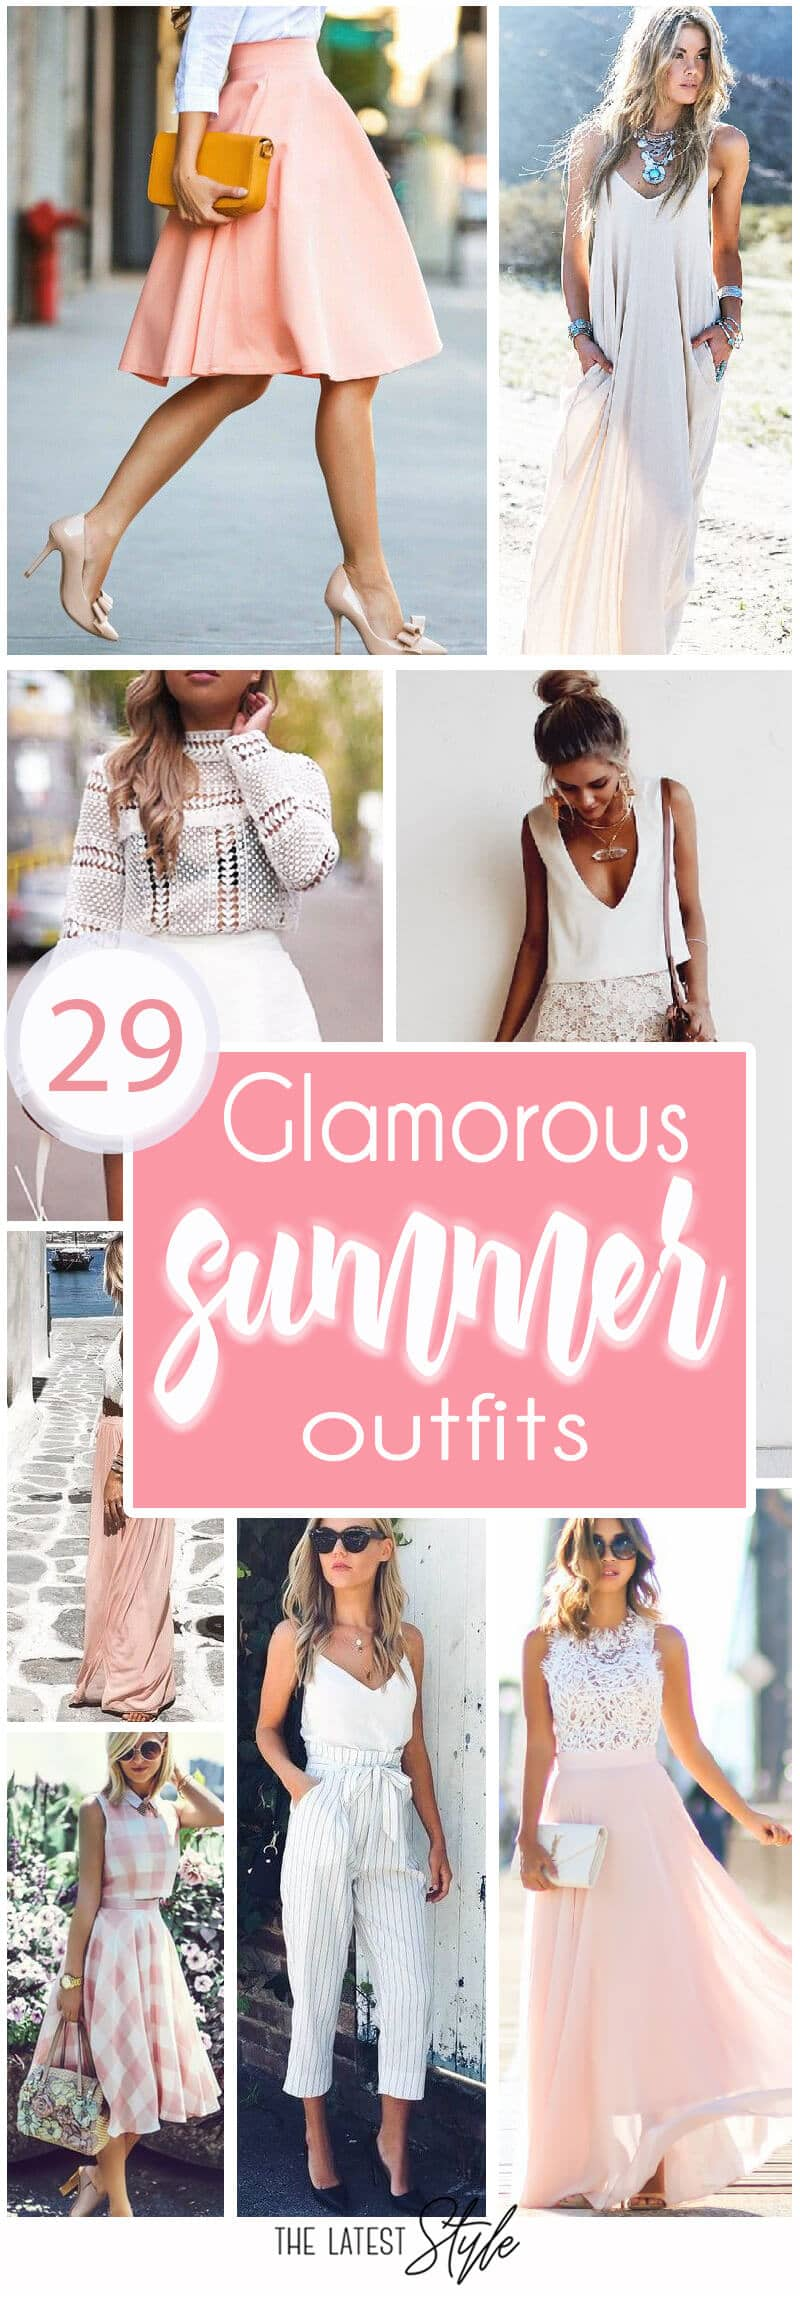 29 Glamorous Summer Outfits